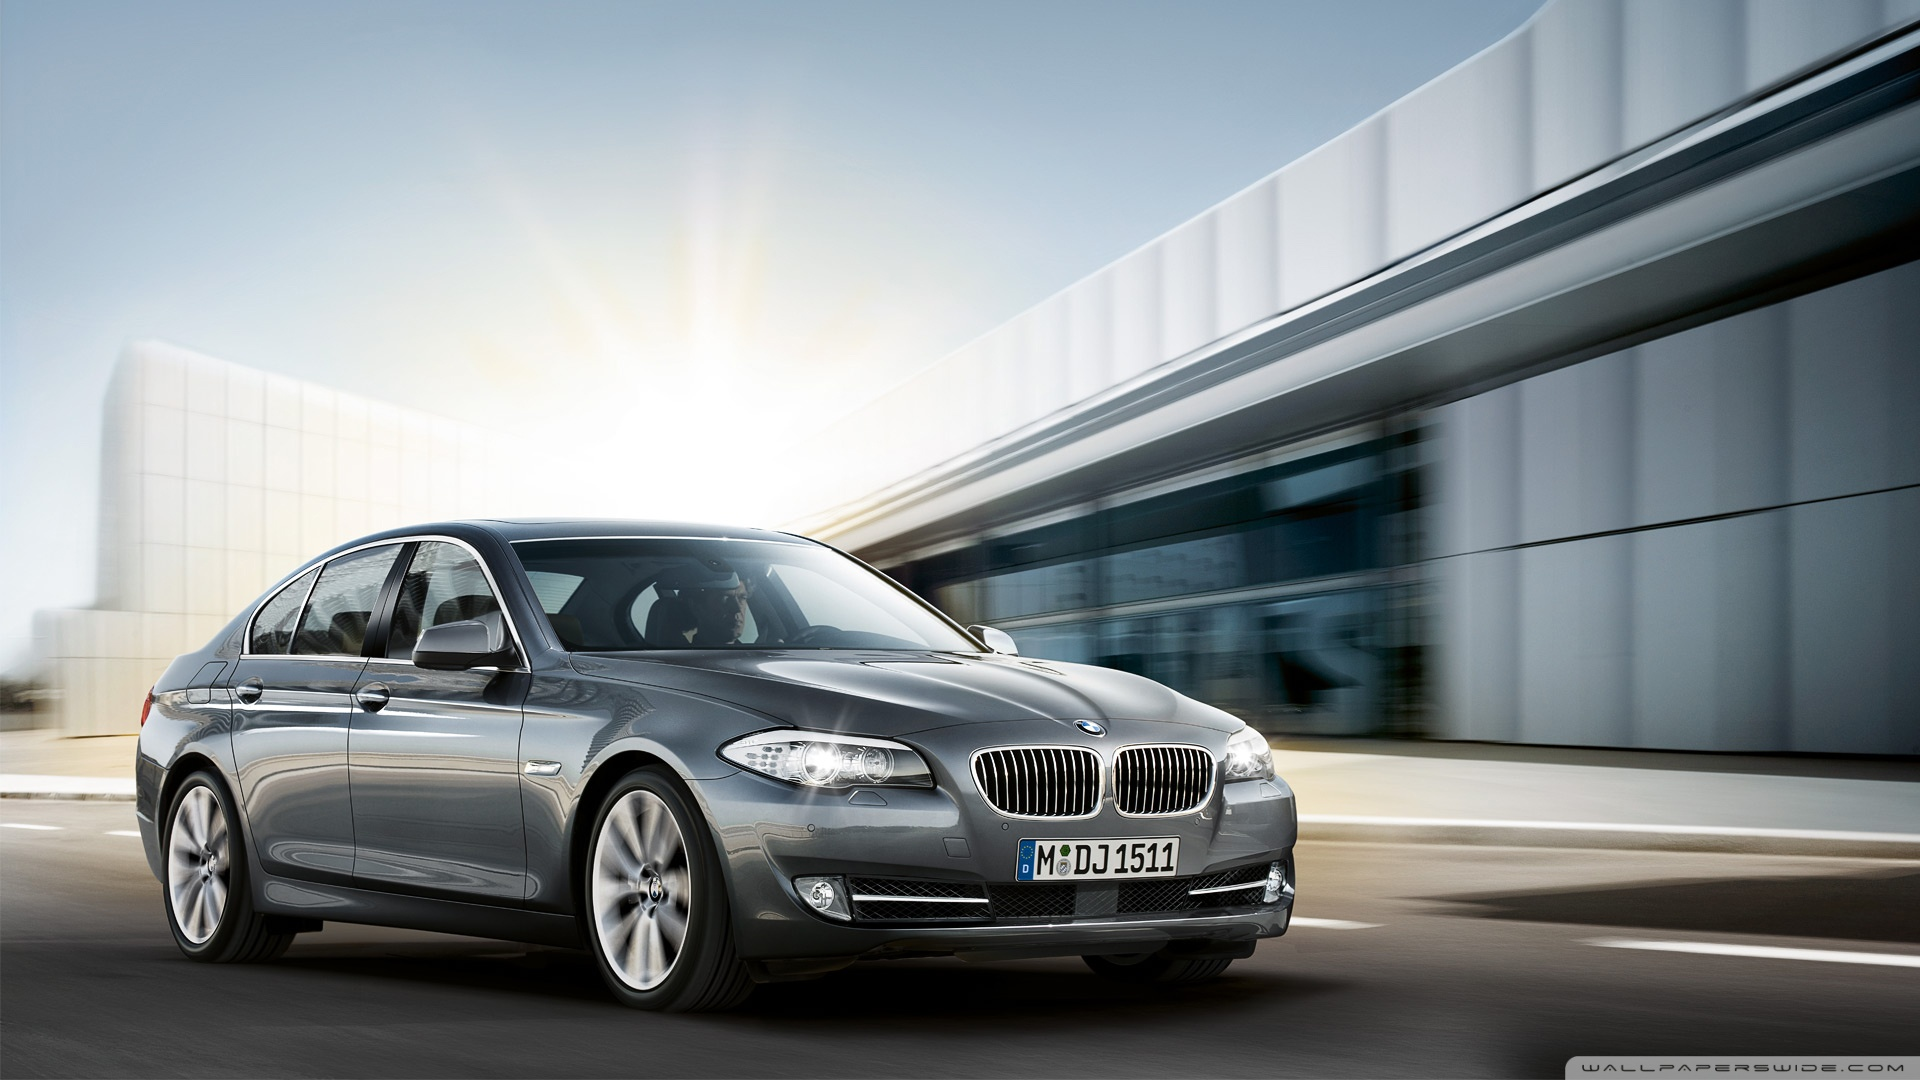 bmw 5 series wallpaper wallpapersafari. Black Bedroom Furniture Sets. Home Design Ideas